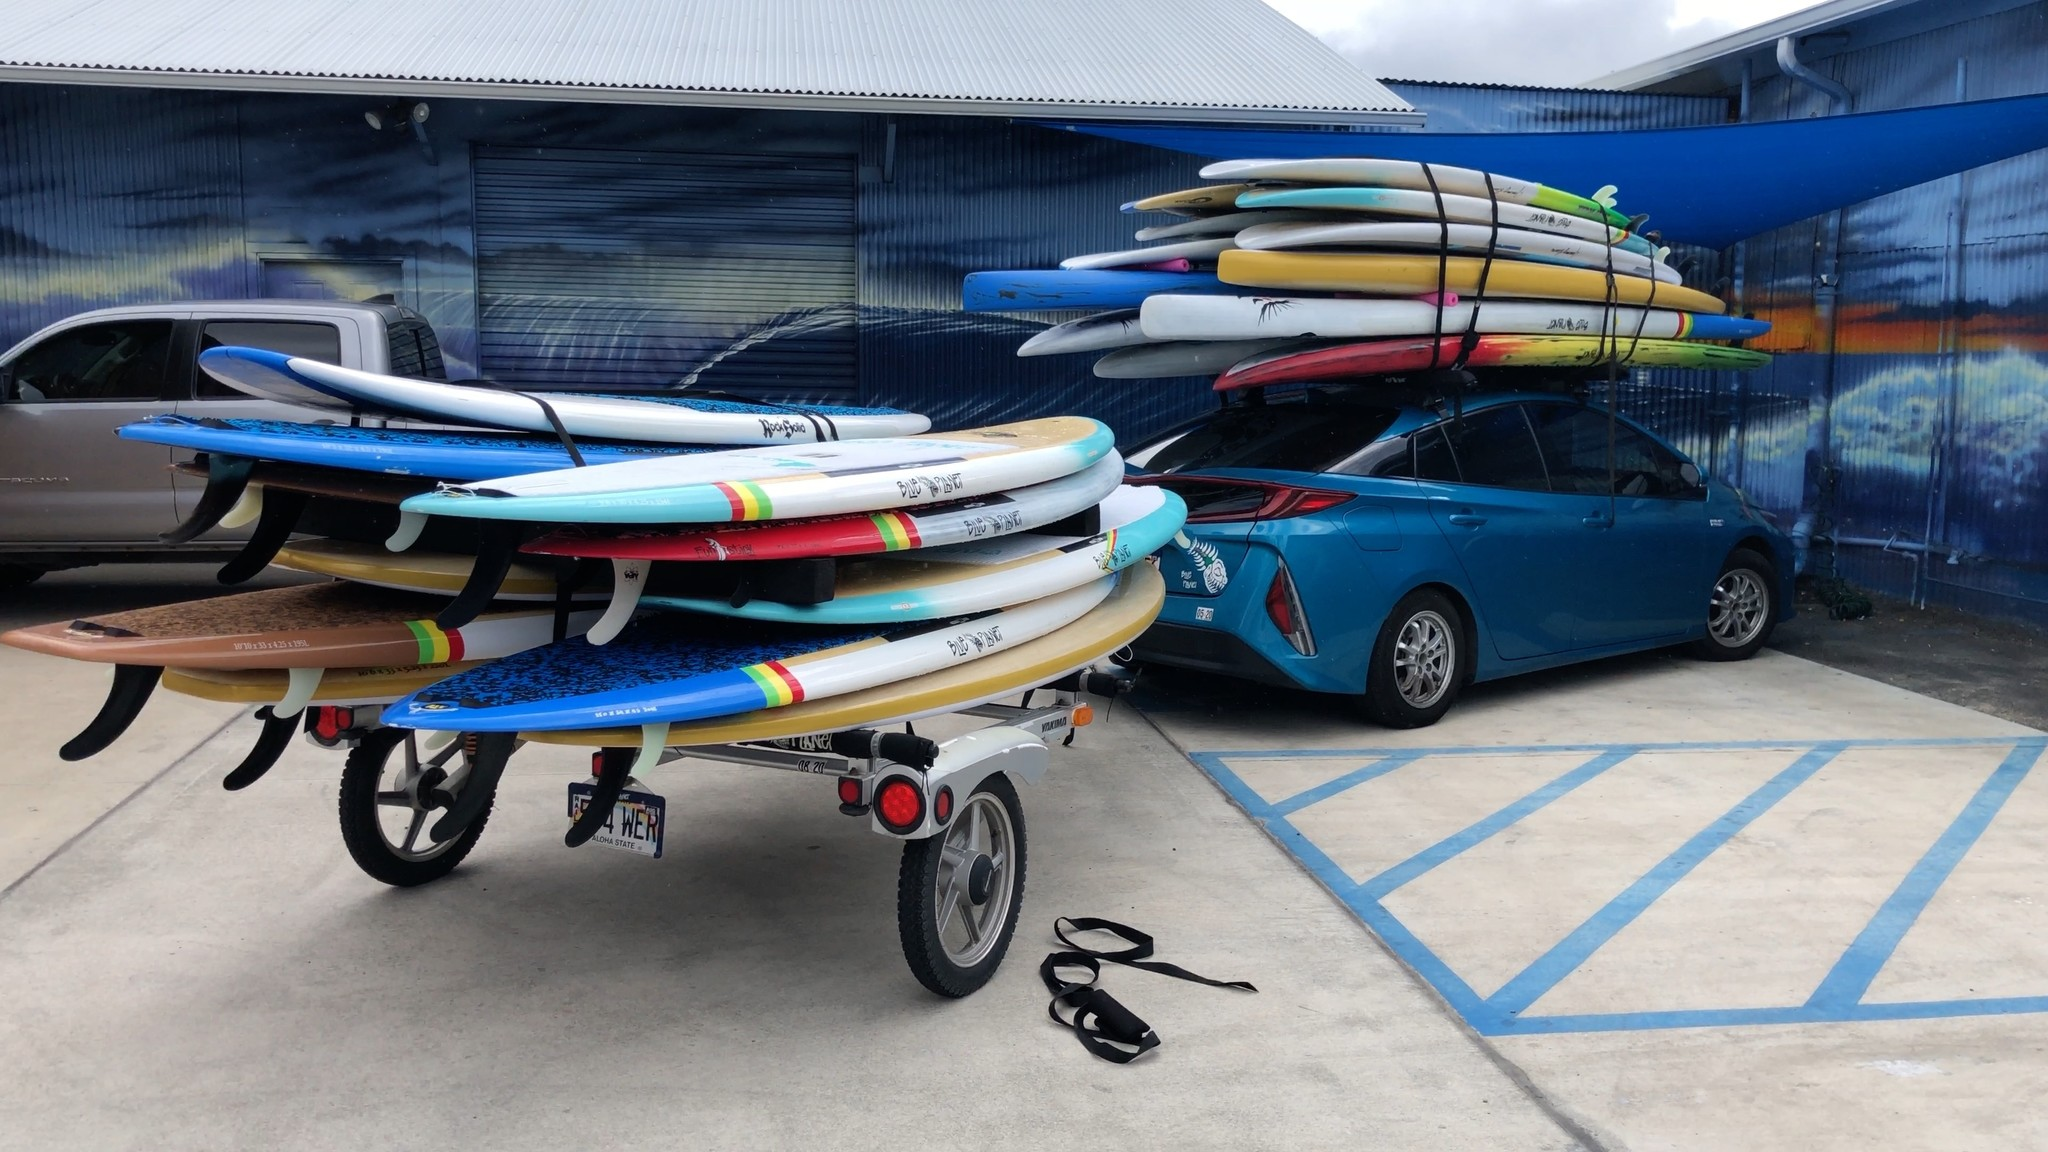 prius loaded with SUP boards how to strap board to car